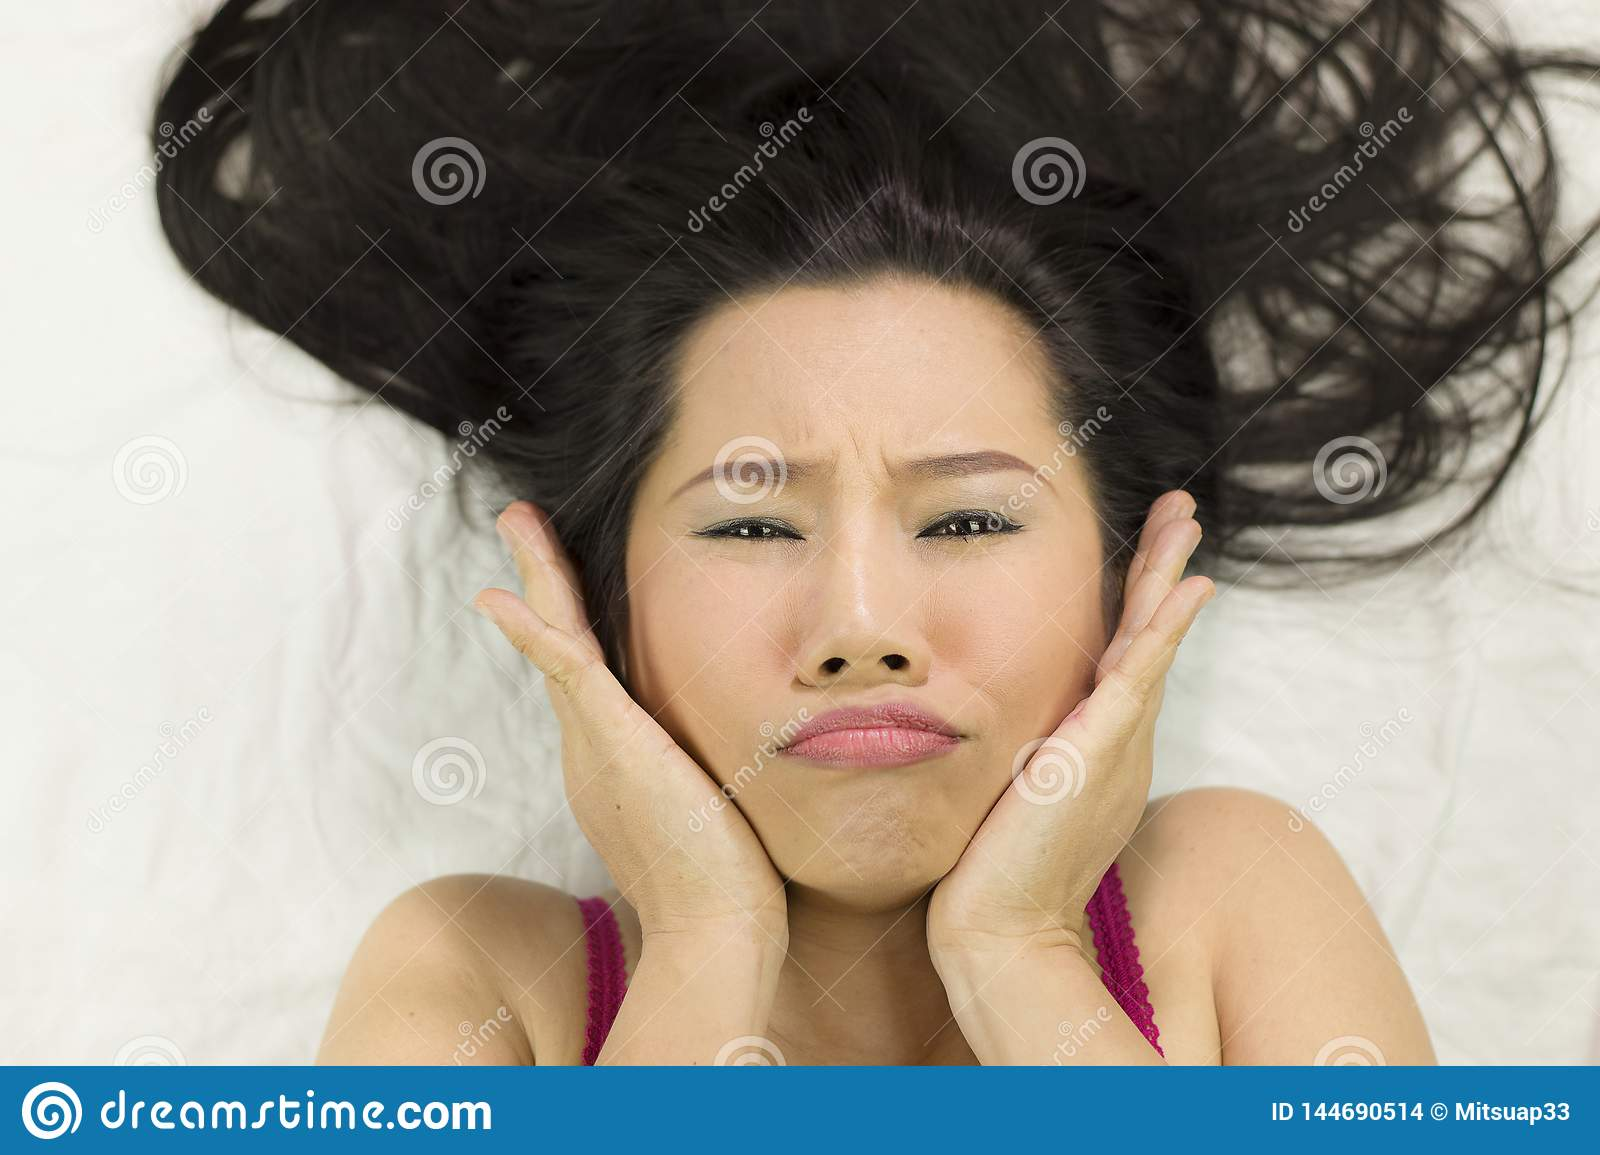 Closeup portrait of moody asian women  lying on ground with black long hair. acting upset , unhappy